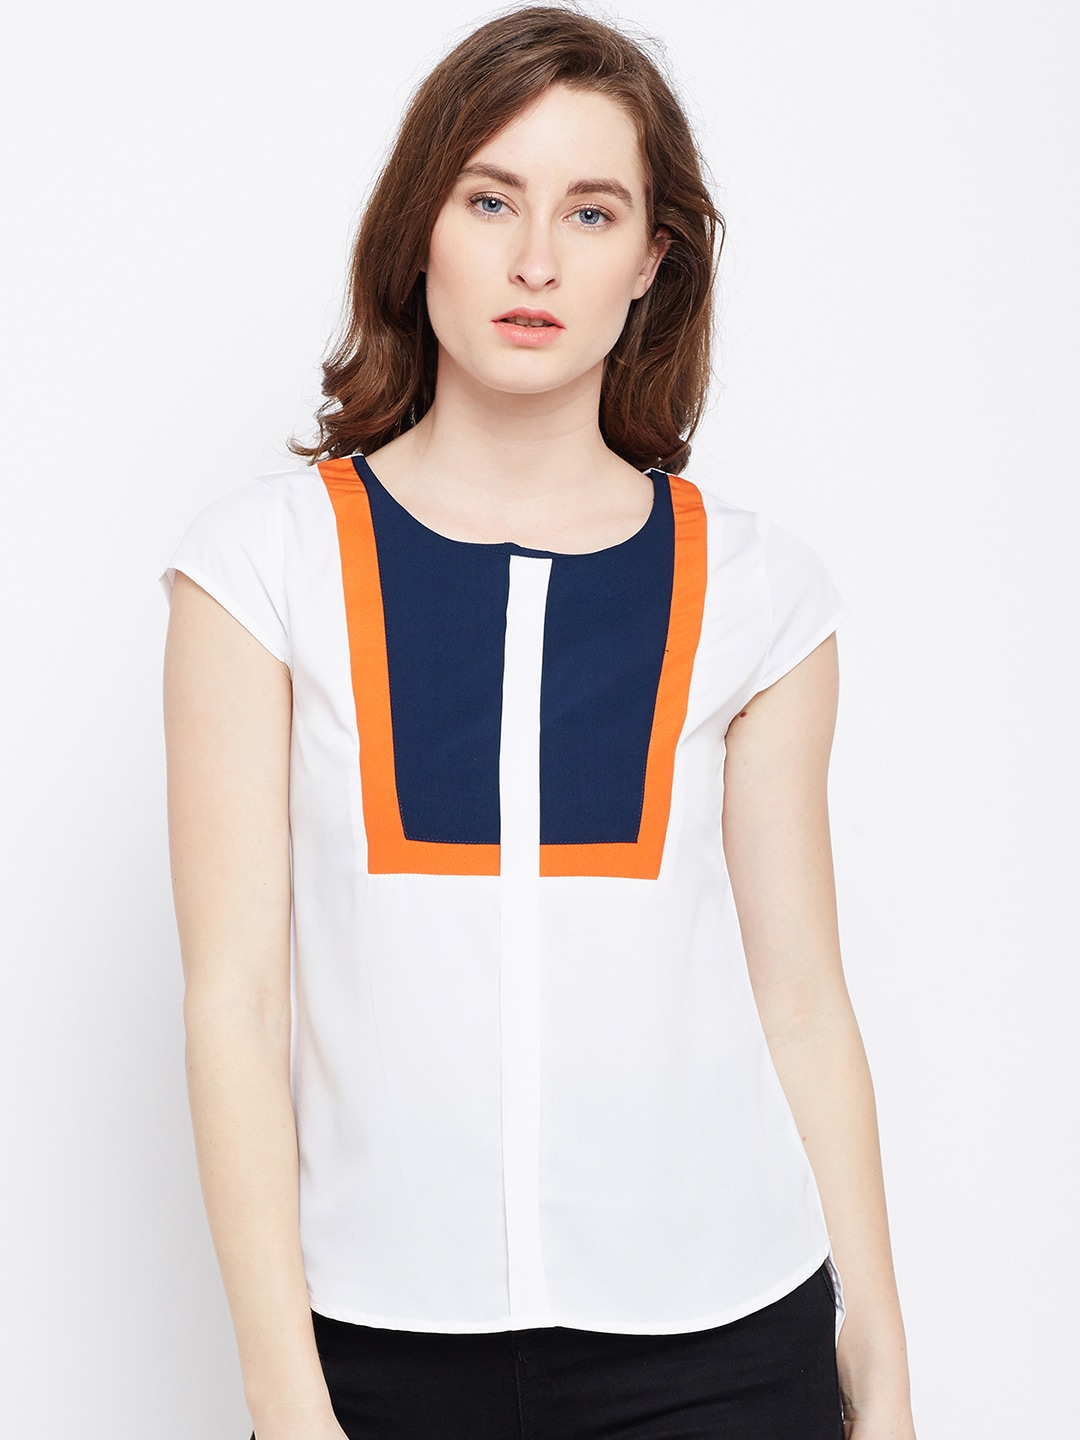 425eb96747a17d Popnetic Crepe Tops - Buy Popnetic Crepe Tops online in India